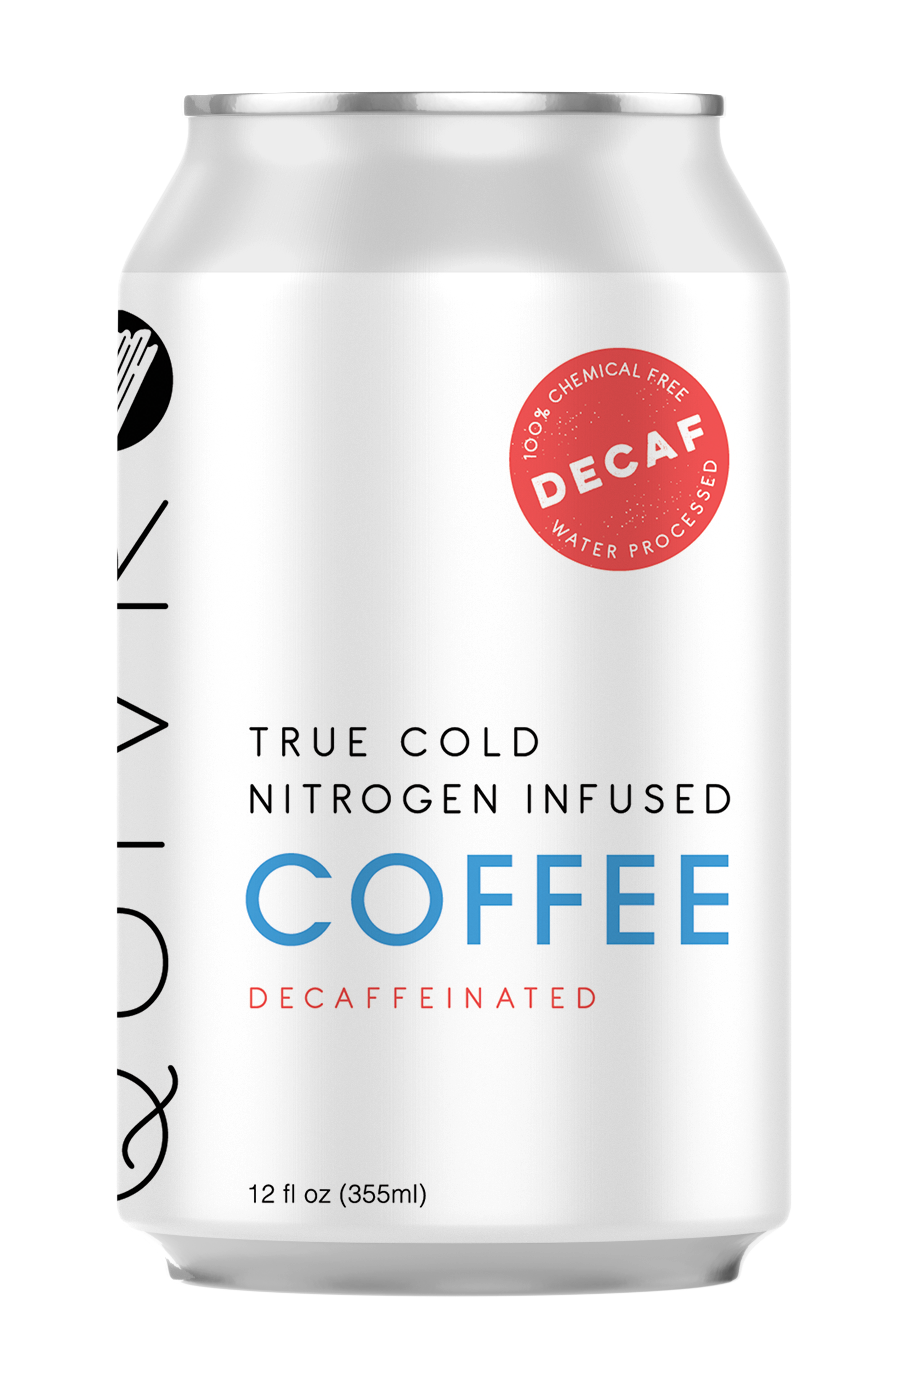 A Quivr Decaf Coffee can showing the flavor name